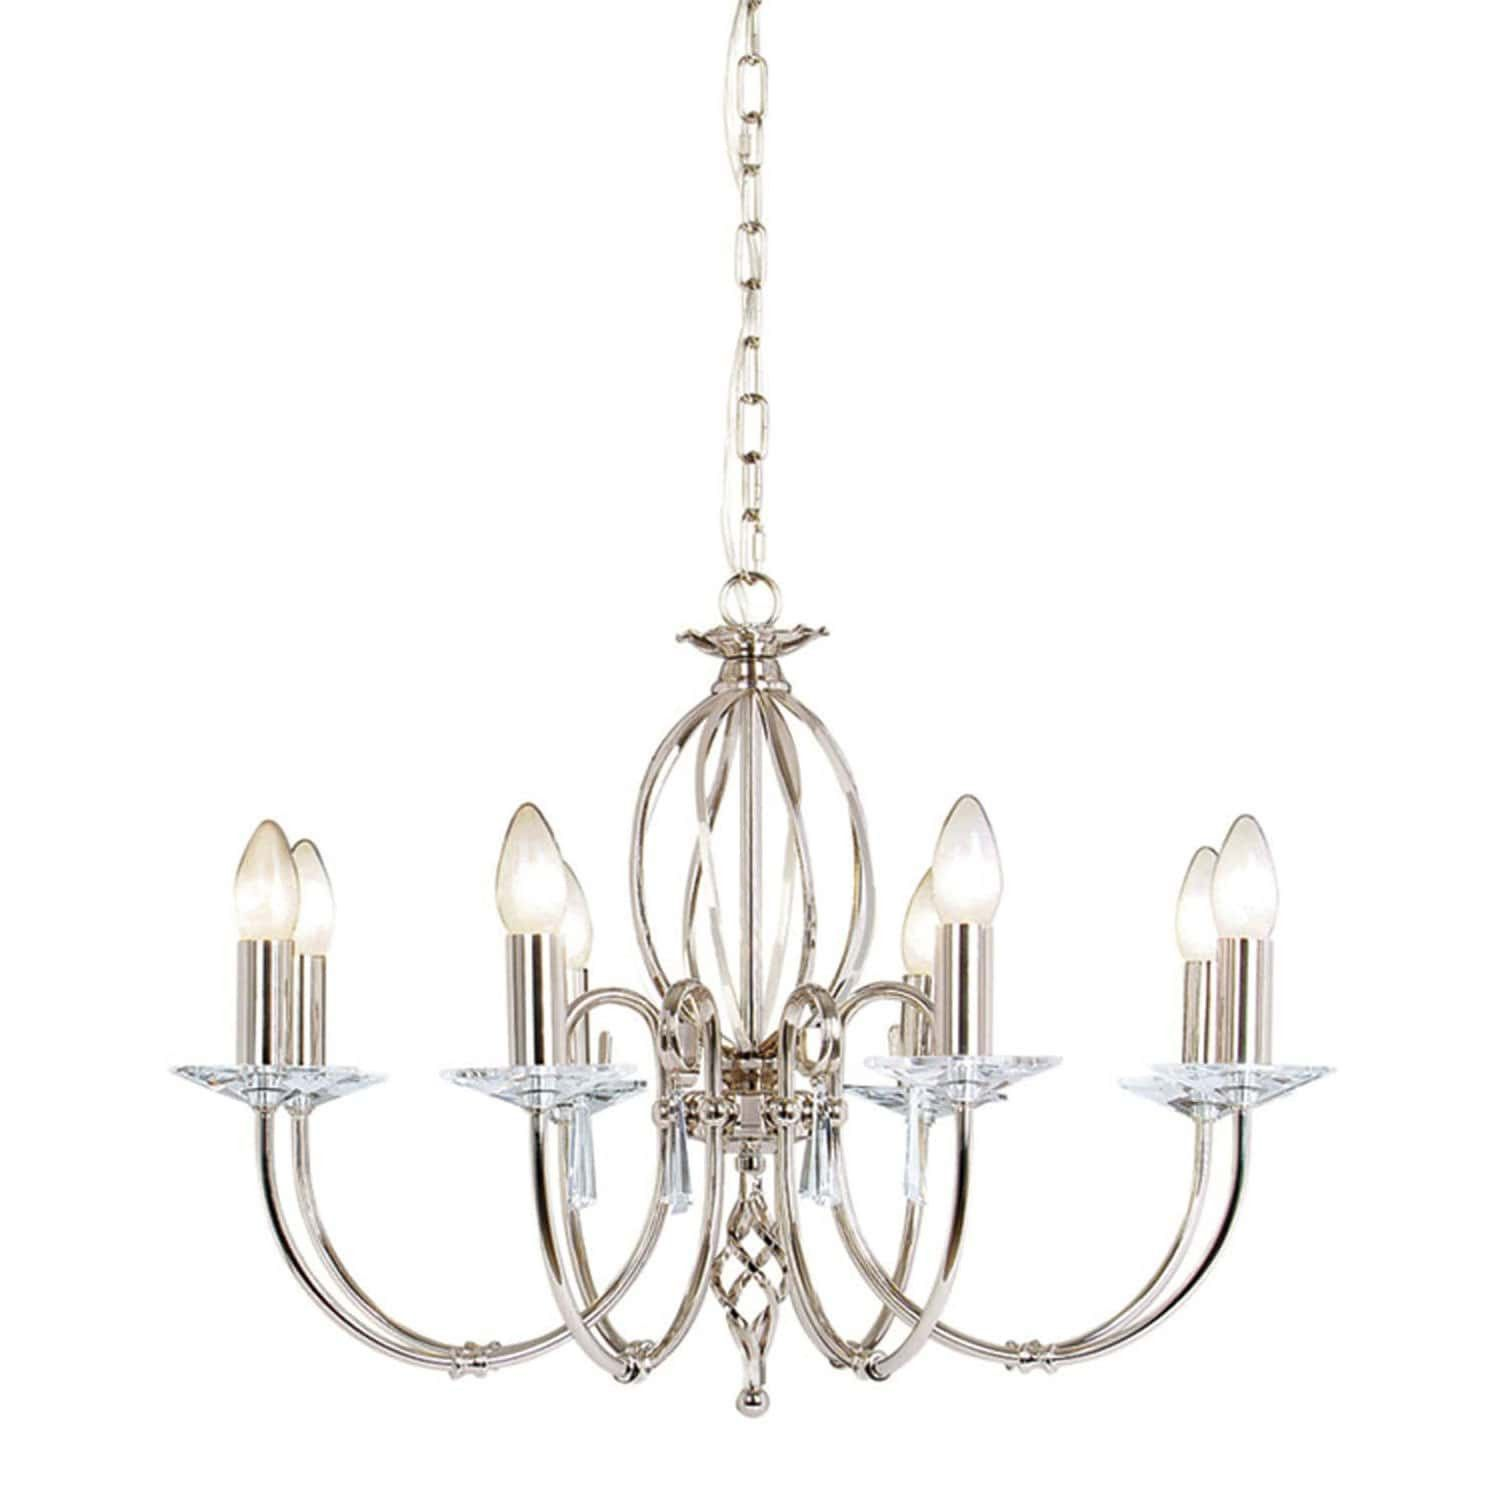 Elstead Aegean 8 Light Silver Nickel Candle Chandelier